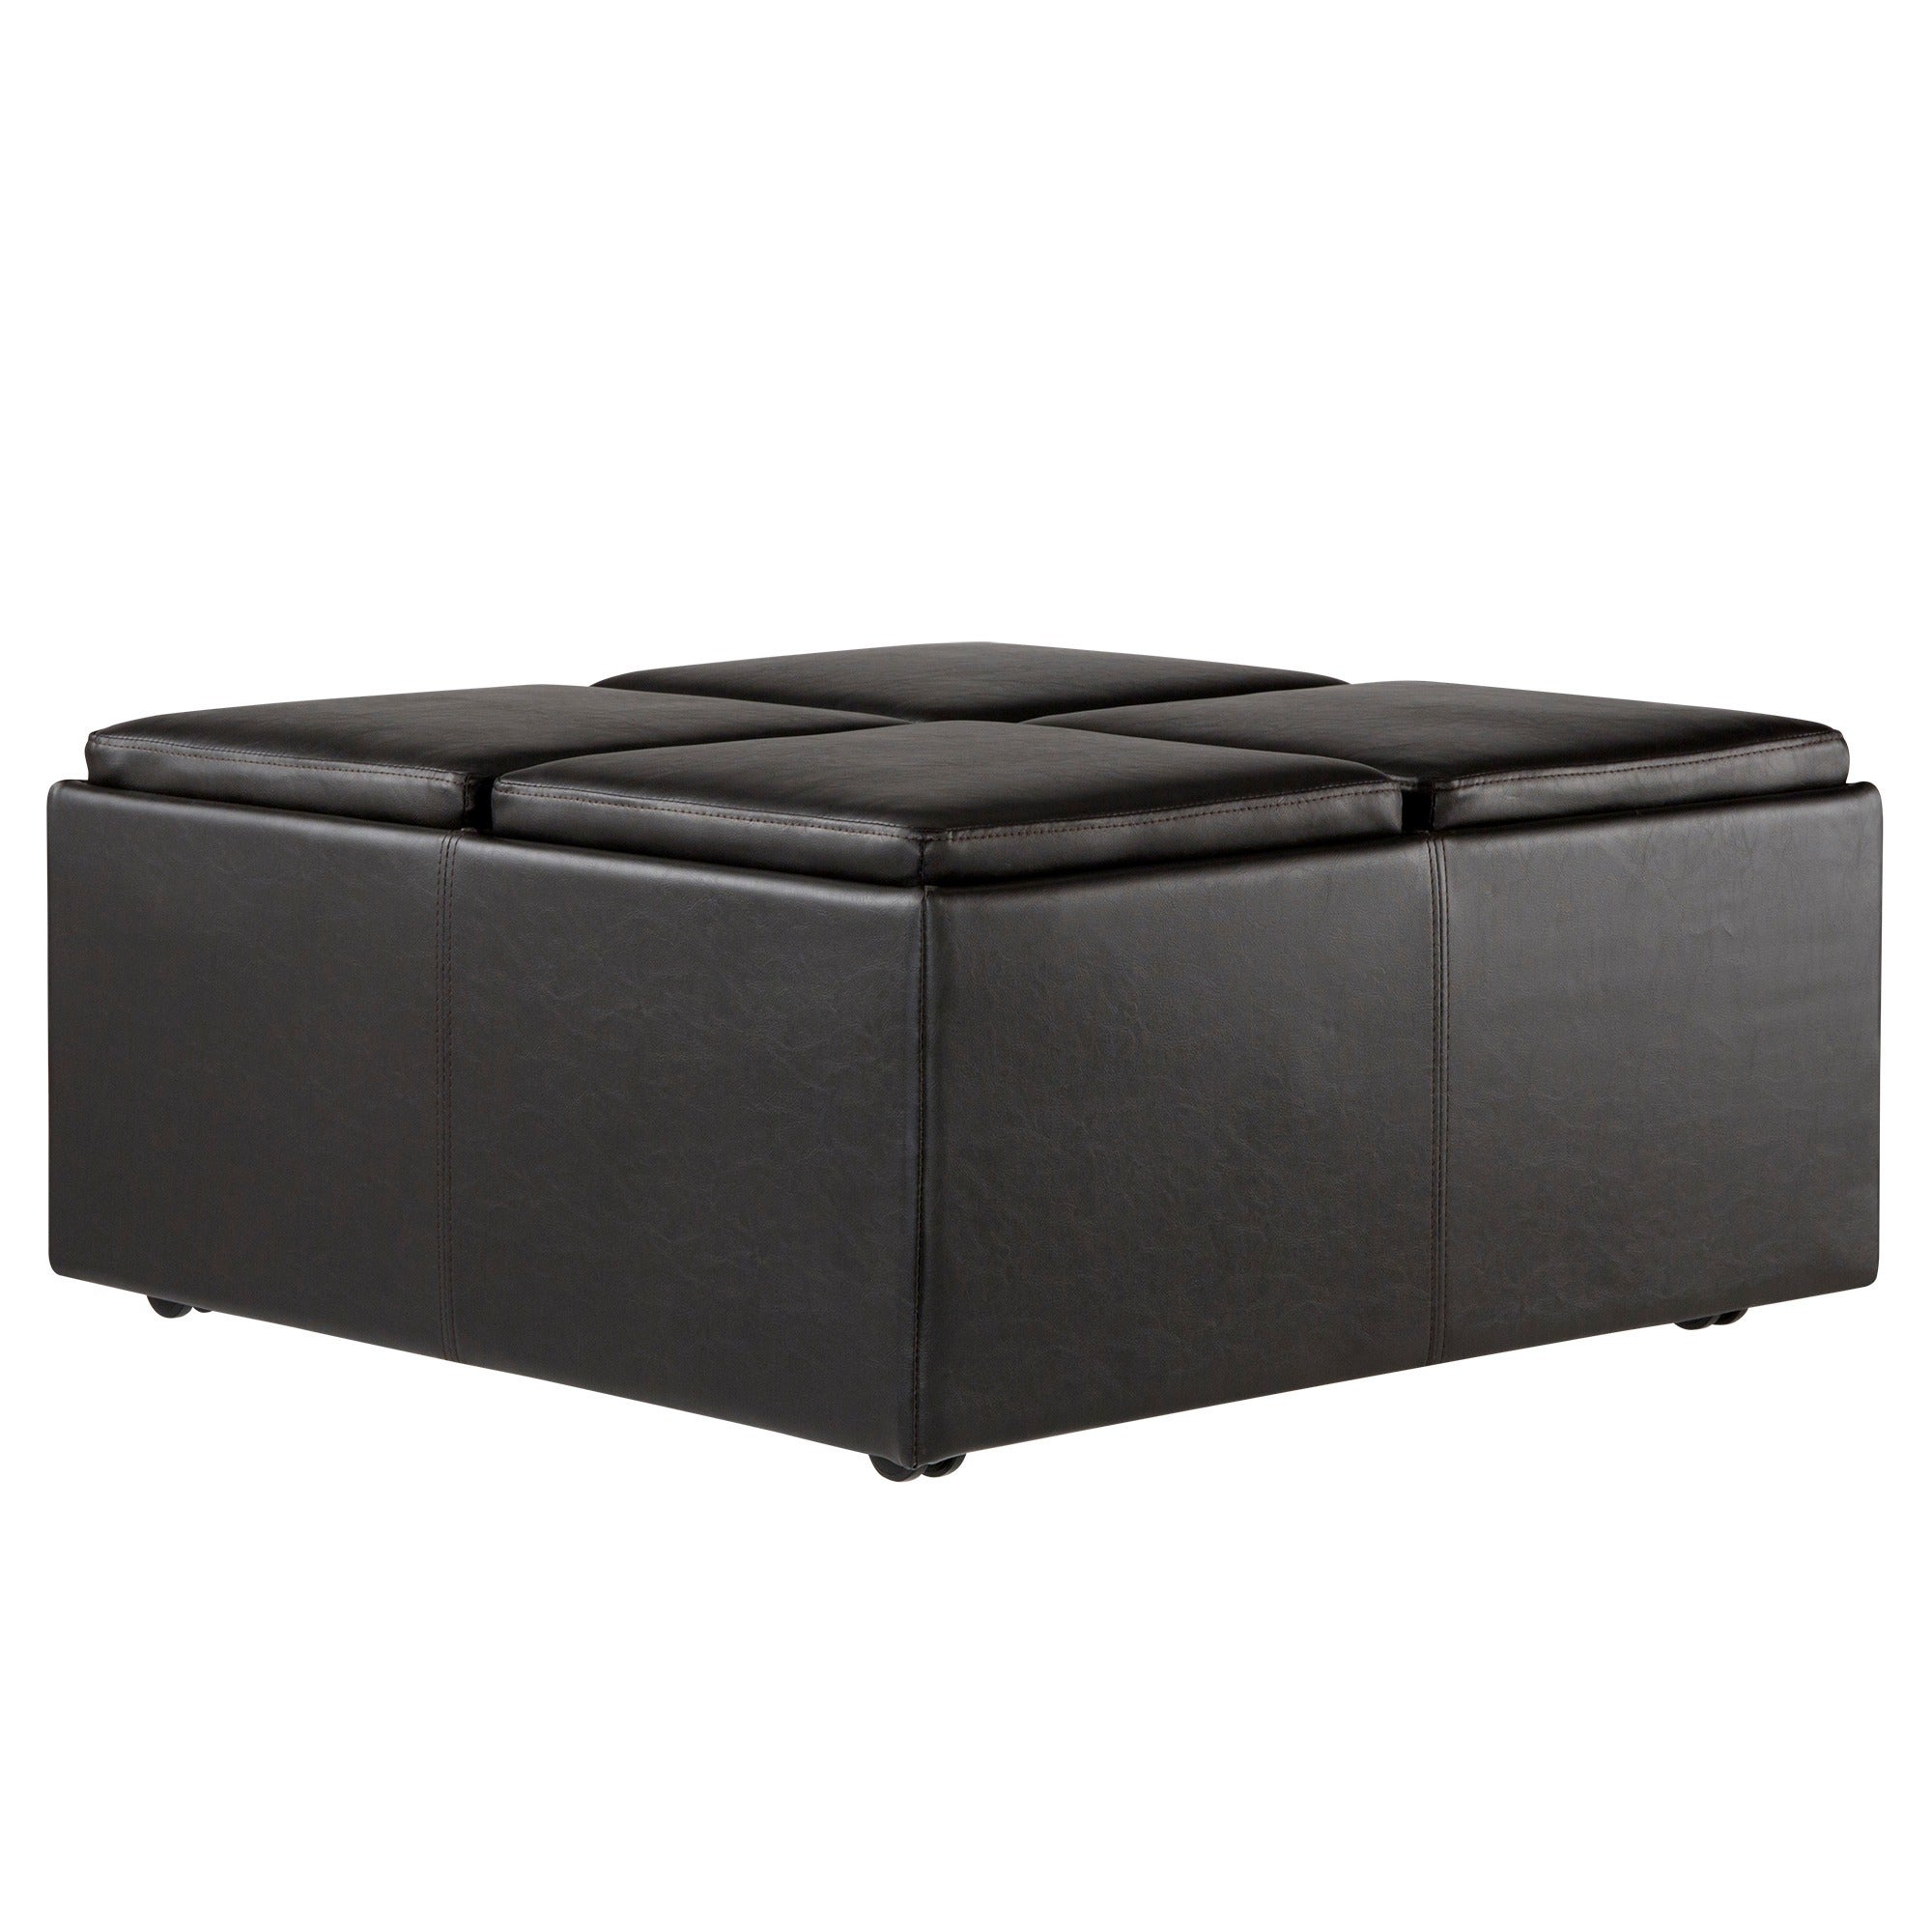 Charmant Shop Montrose Faux Dark Brown Leather Multipurpose Storage Ottoman By  INSPIRE Q Classic   On Sale   Free Shipping Today   Overstock.com   3725836